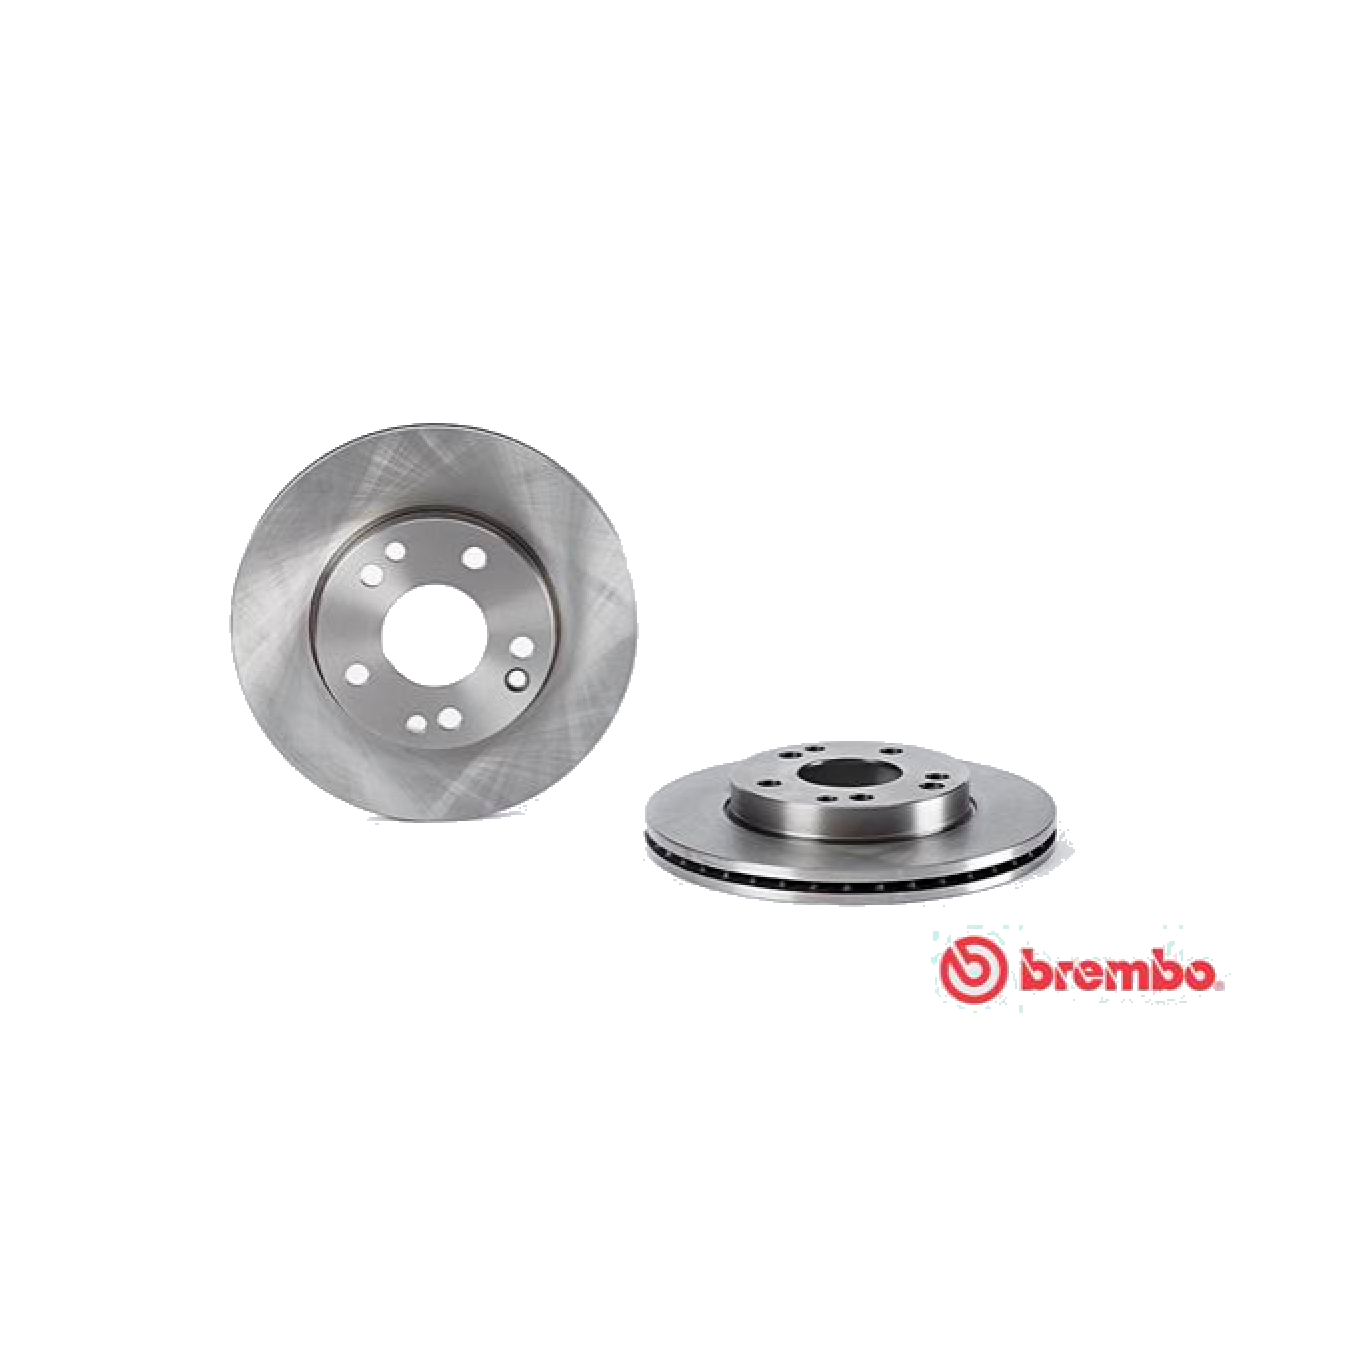 PAIR OF FRONT BRAKE DISCS MERCEDES BENZ 190 W201 BREMBO FOR A2014211312